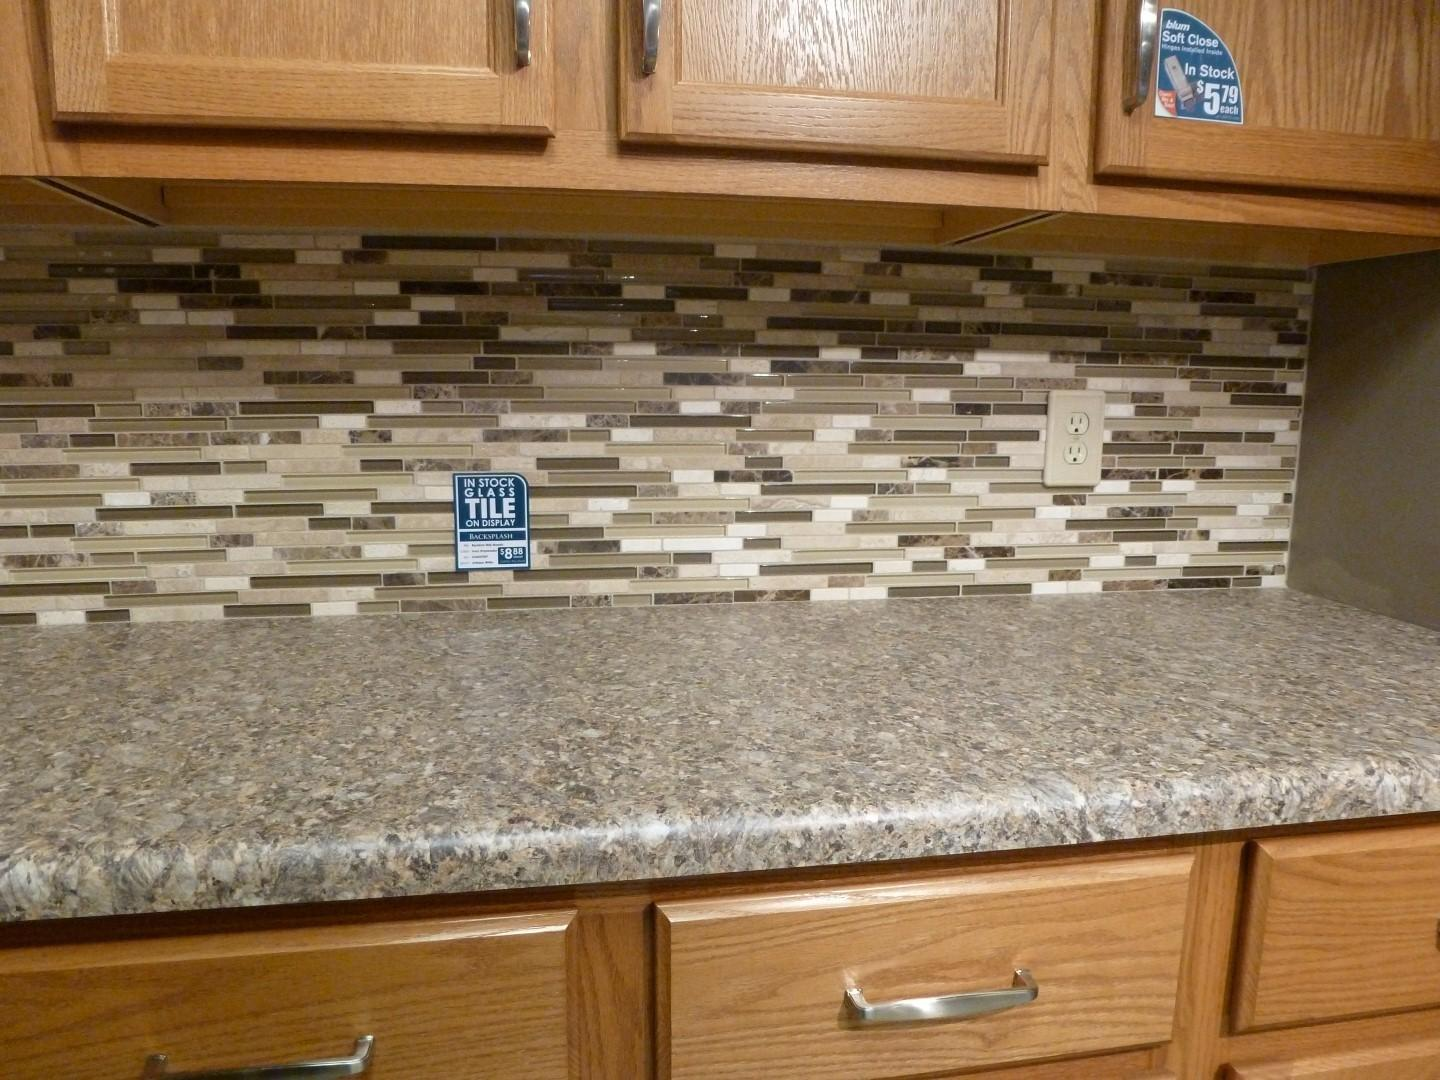 Rsmacal Square Tiles Light Effect Kitchen